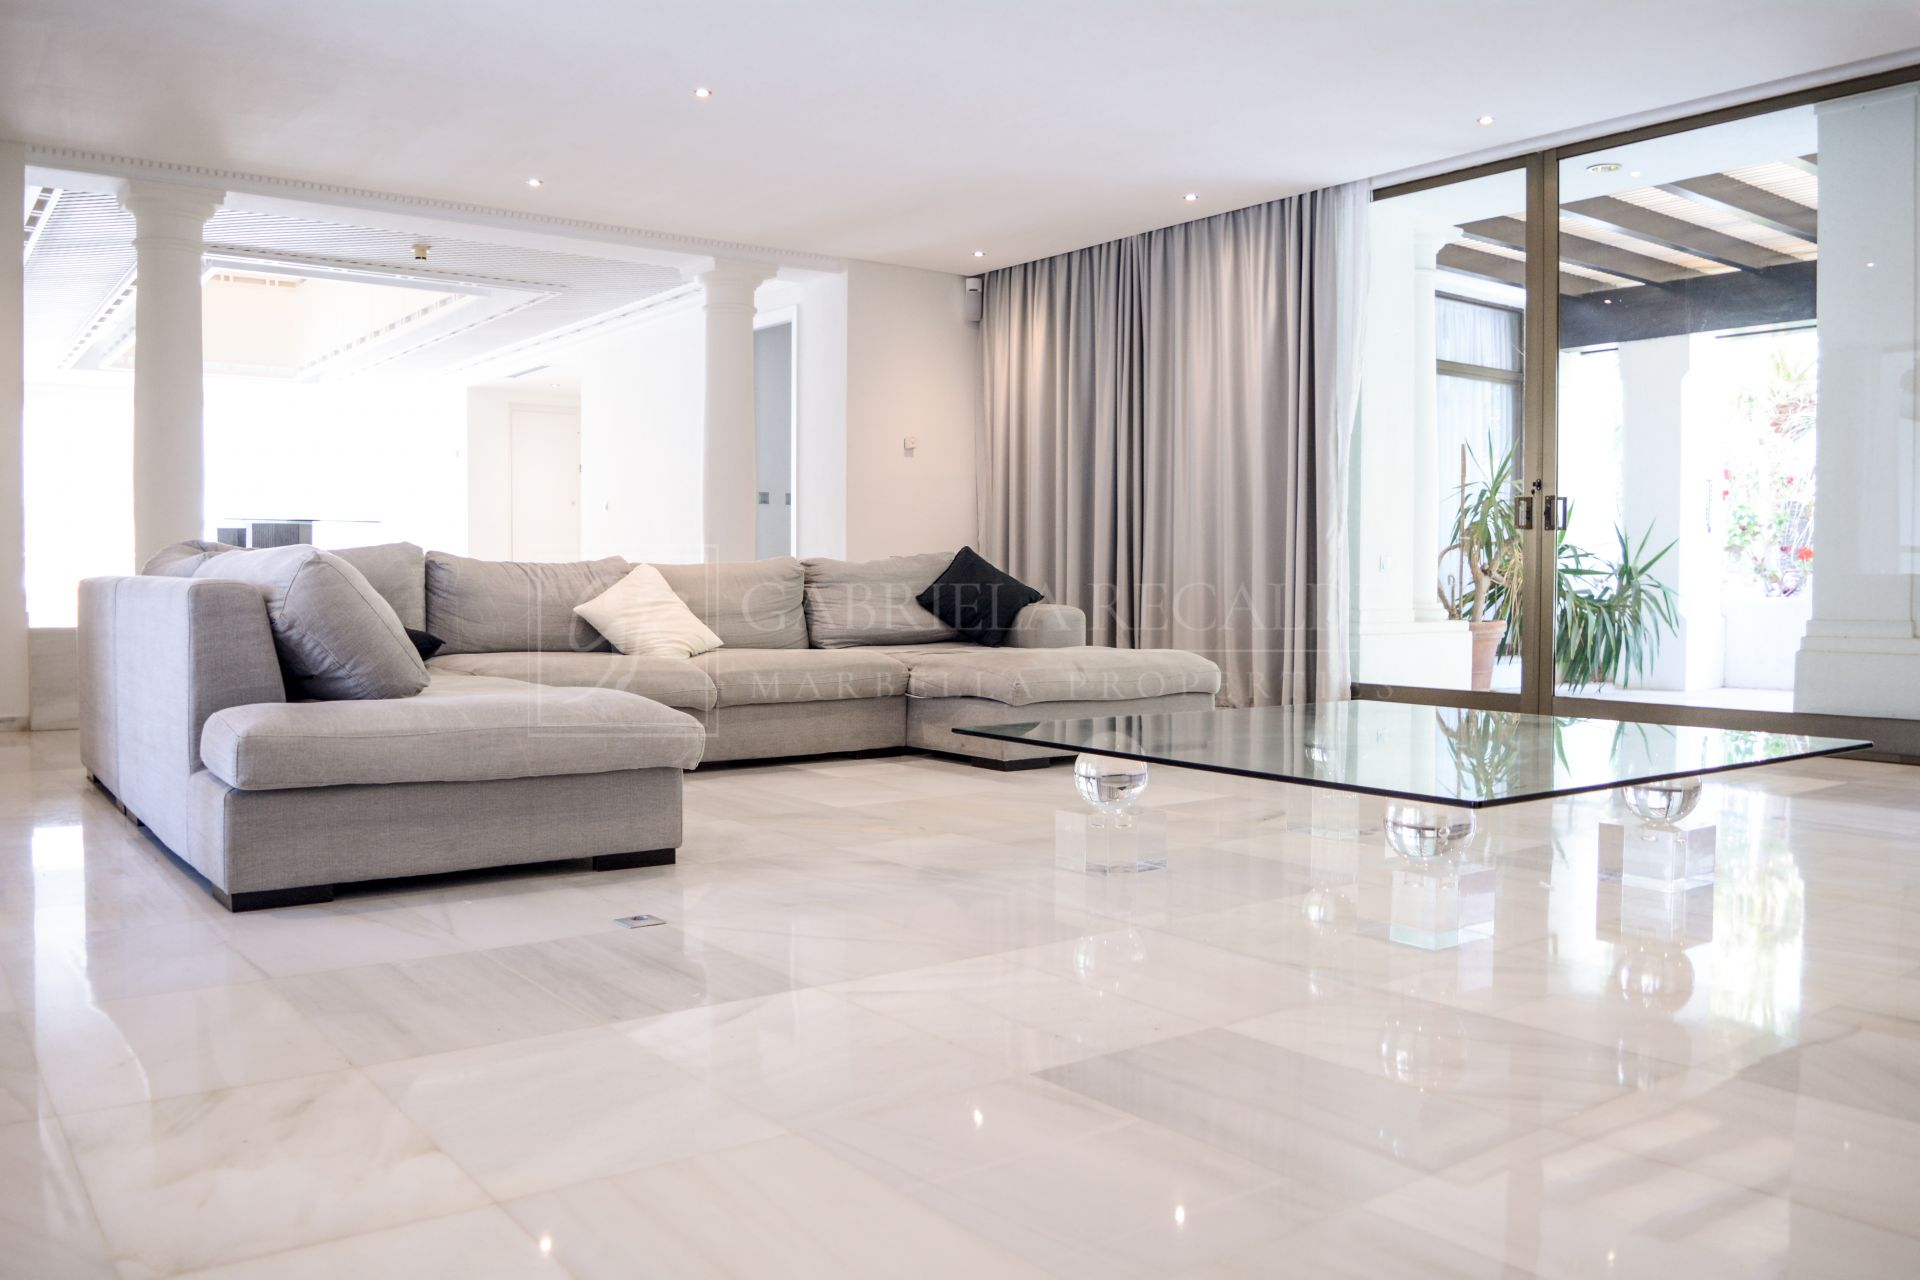 Exceptional 5 bedroom penthouse in Puerto Banus